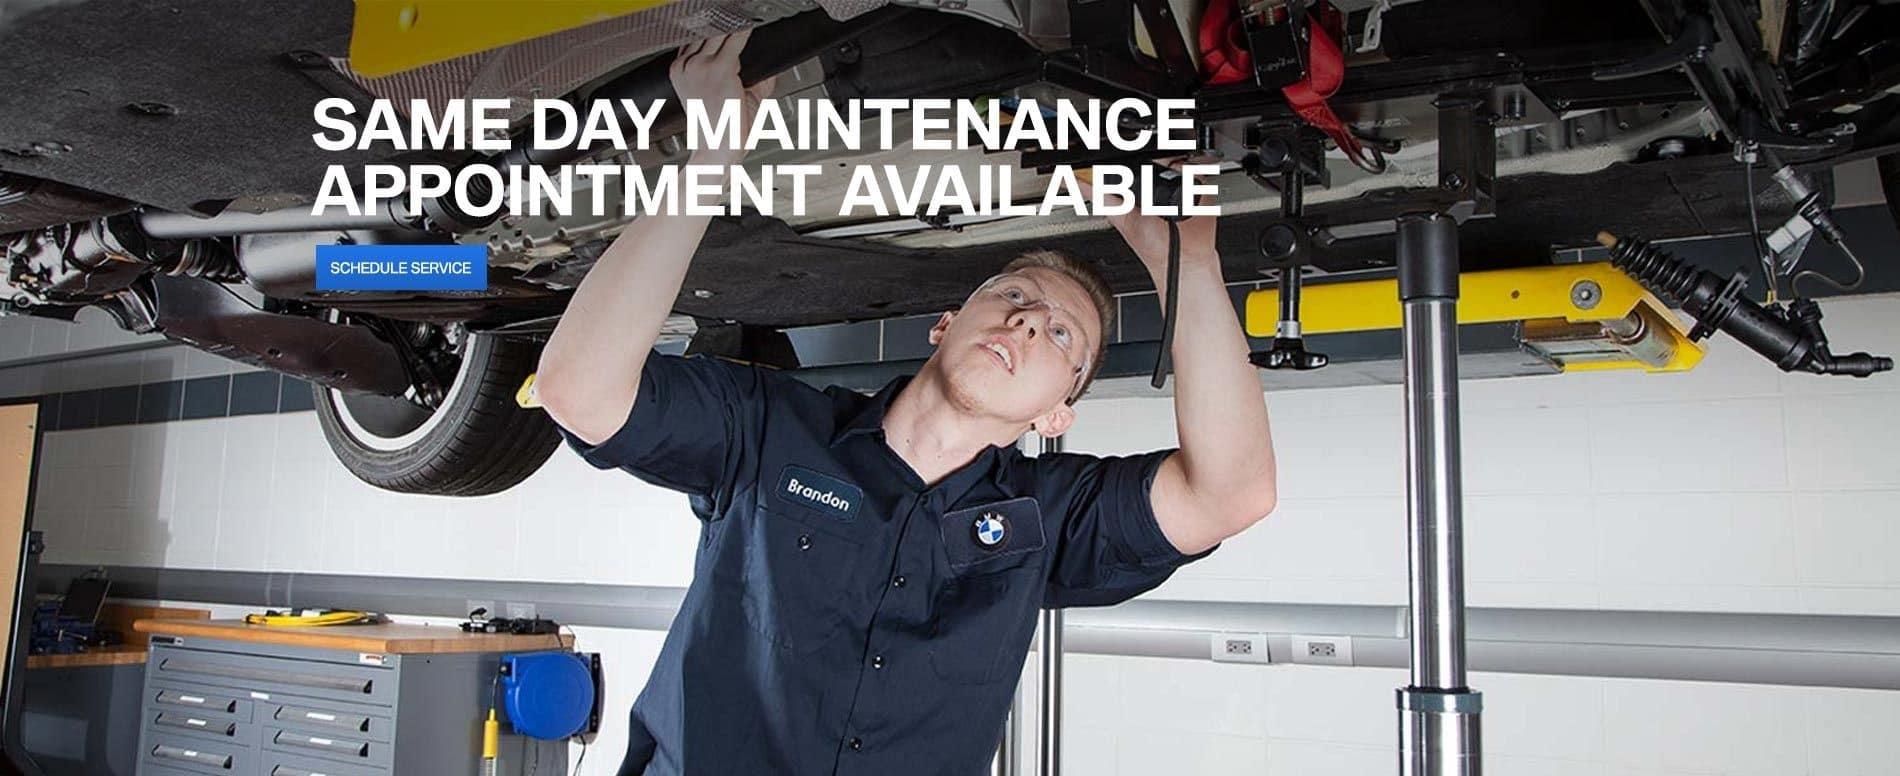 Dame Day Maintenance Banner